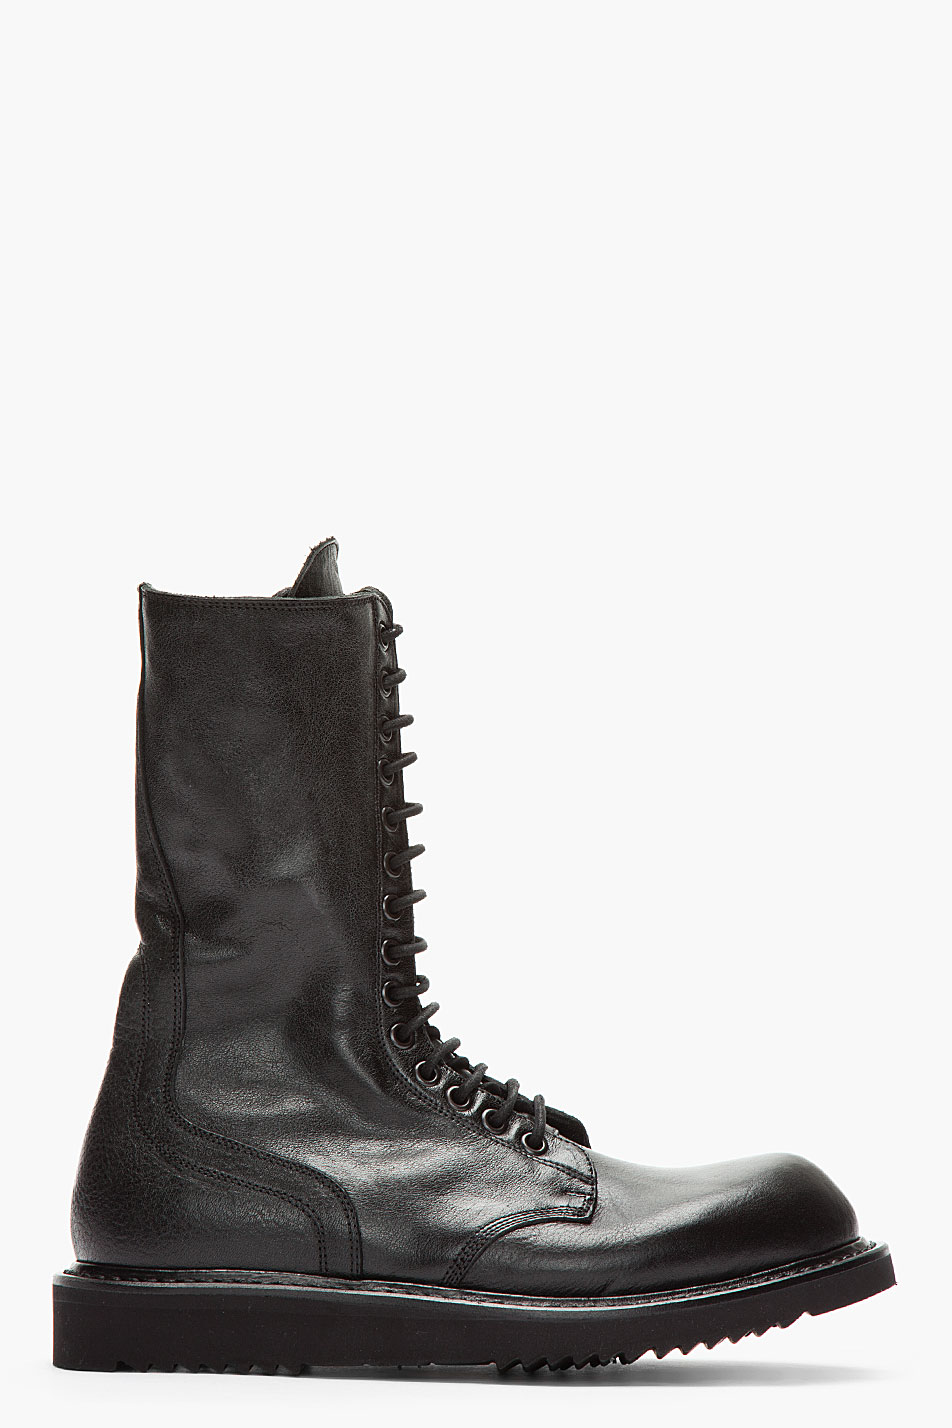 rick owens black laceup army combat boots in black for